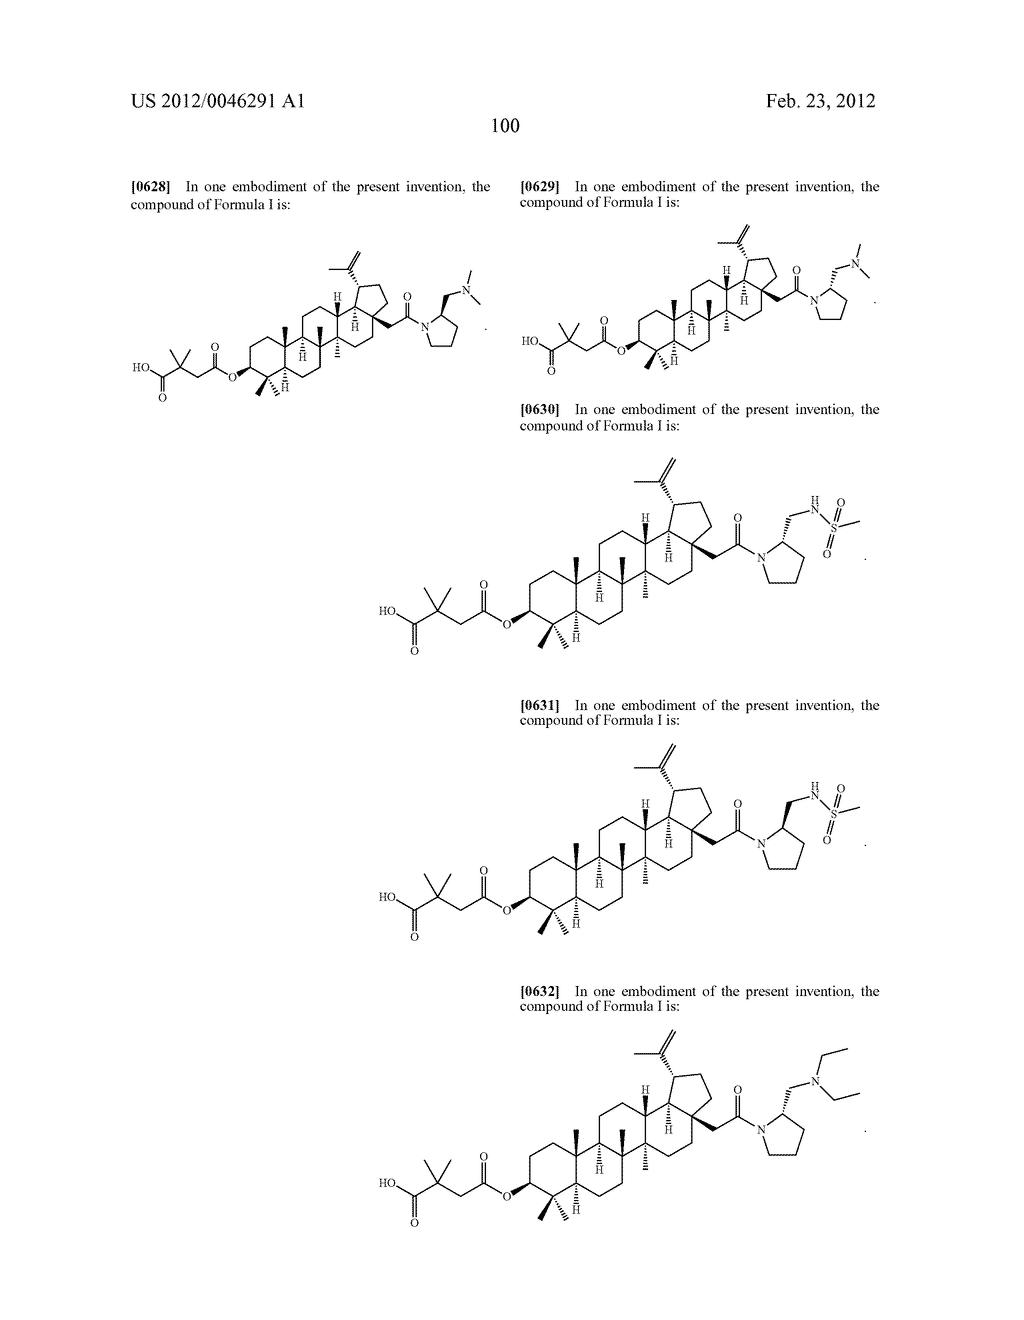 Extended Triterpene Derivatives - diagram, schematic, and image 100